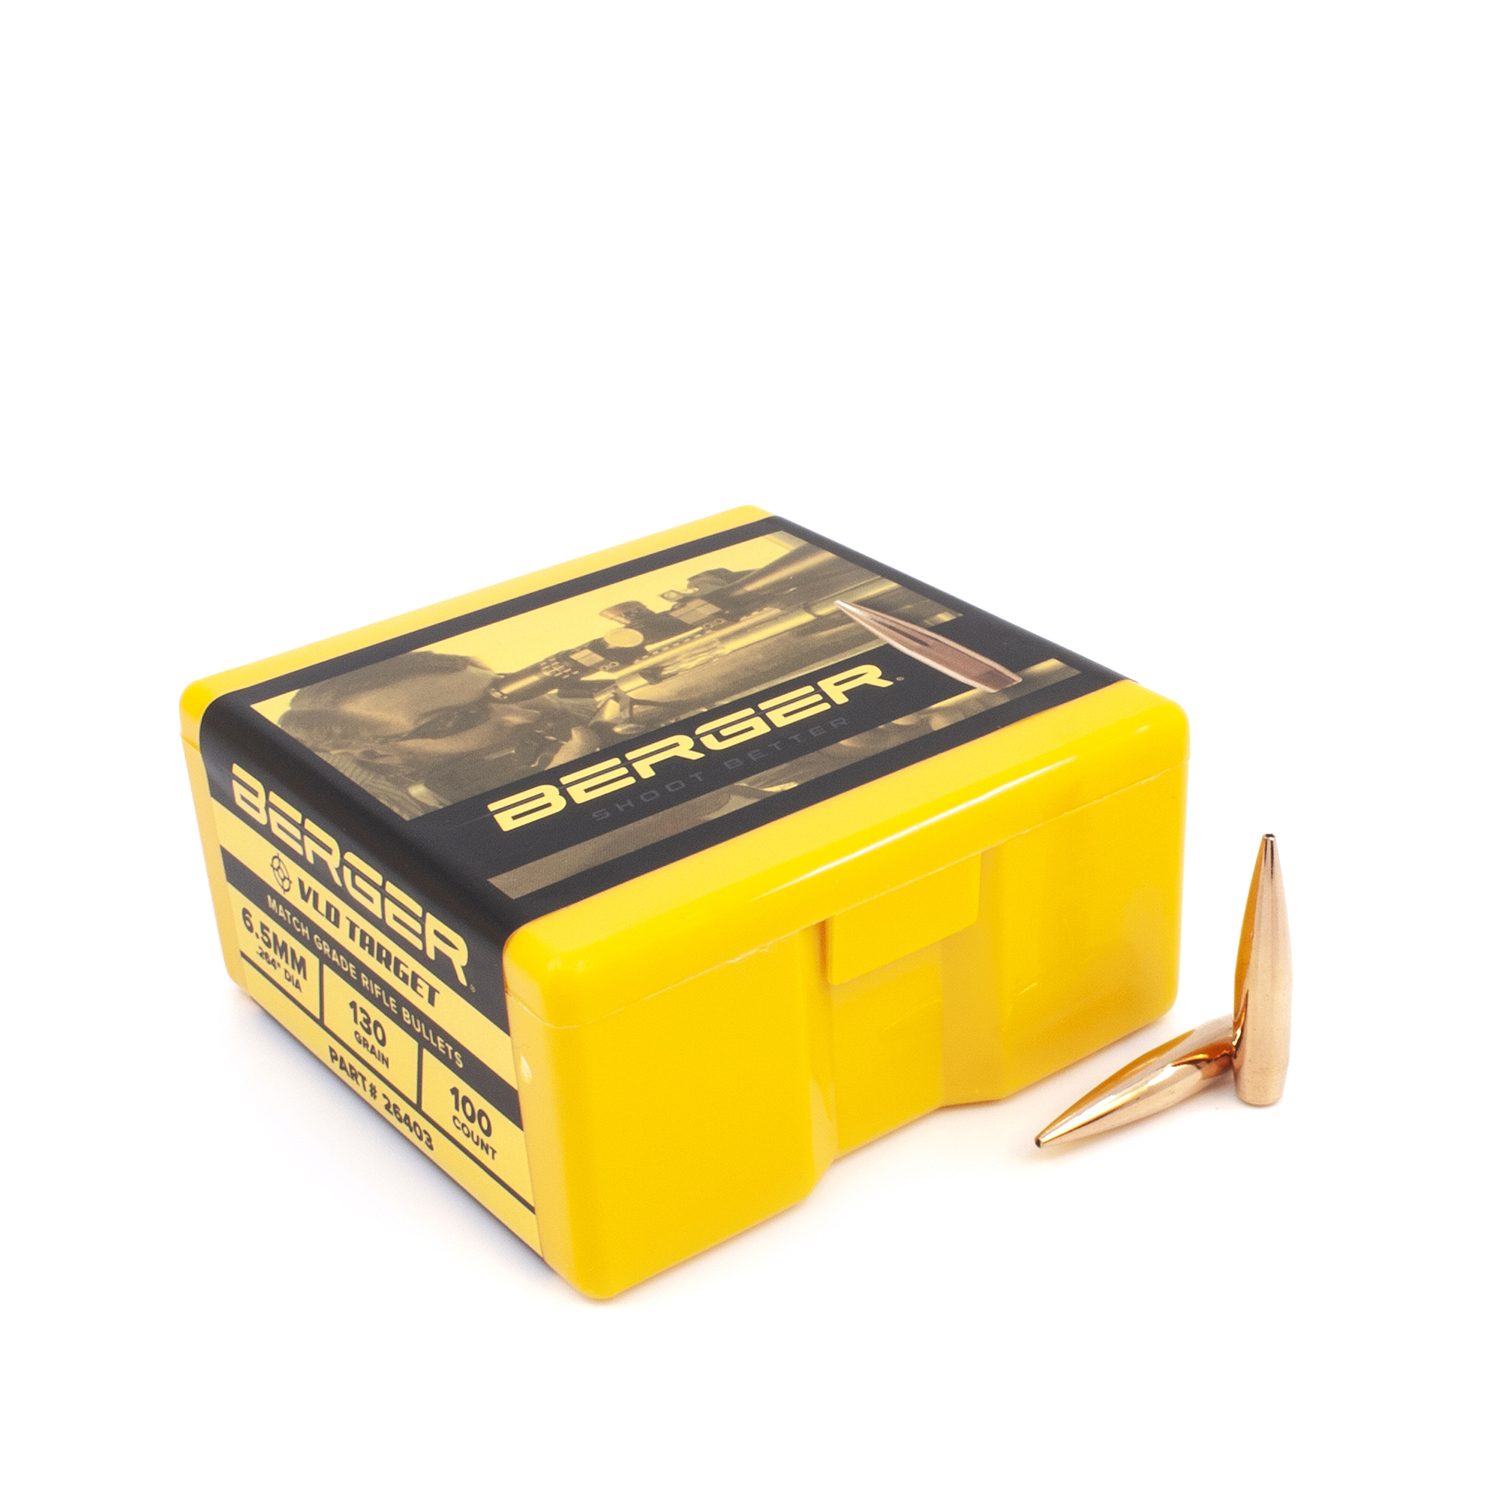 Berger Bullets - 6.5mm, 130 gr. VLD Target - Box of 100